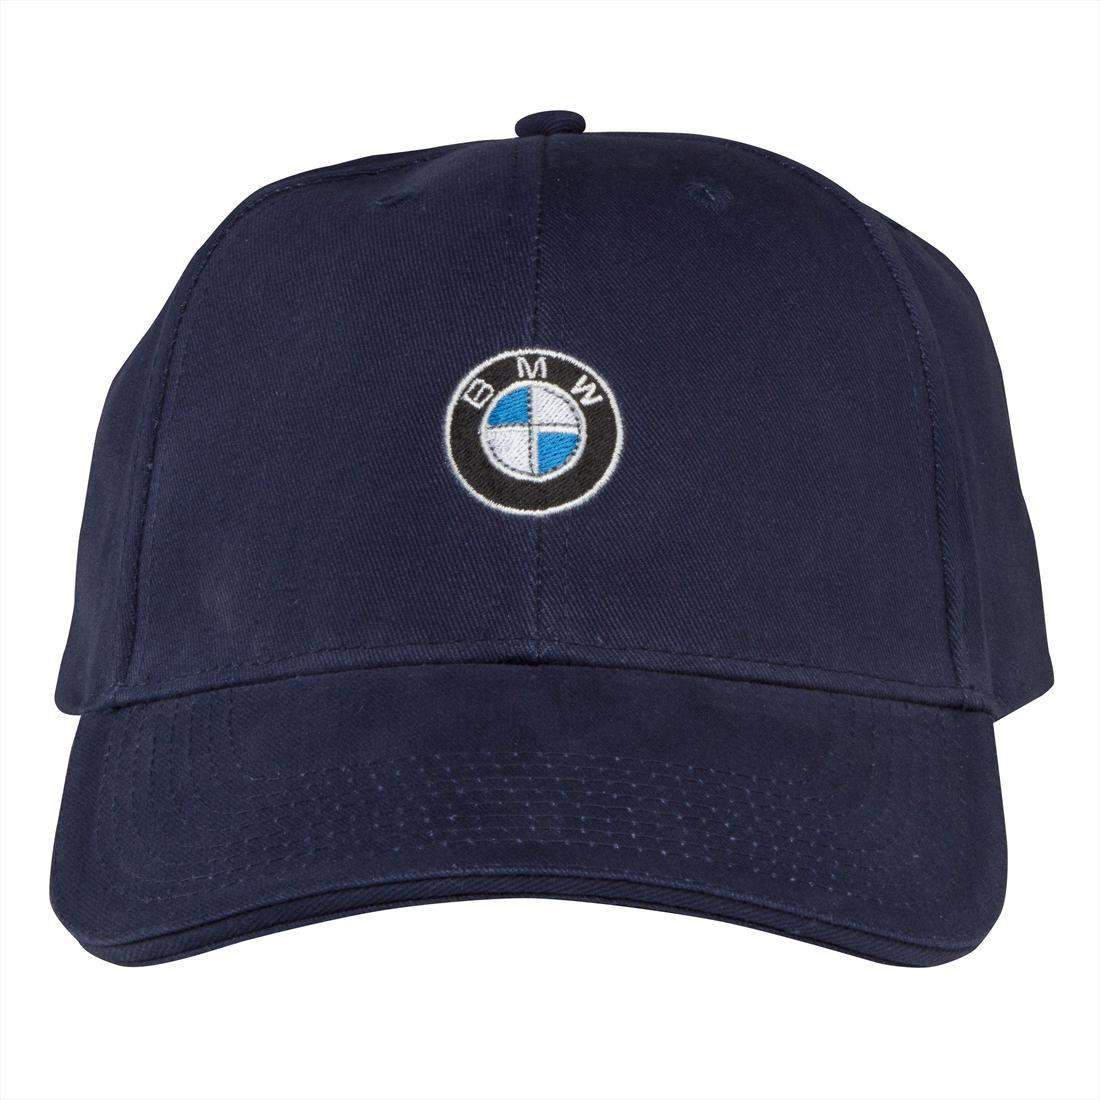 981c6b4c0d7 ShopBMWUSA.com  LIFESTYLE PRODUCTS  CAPS